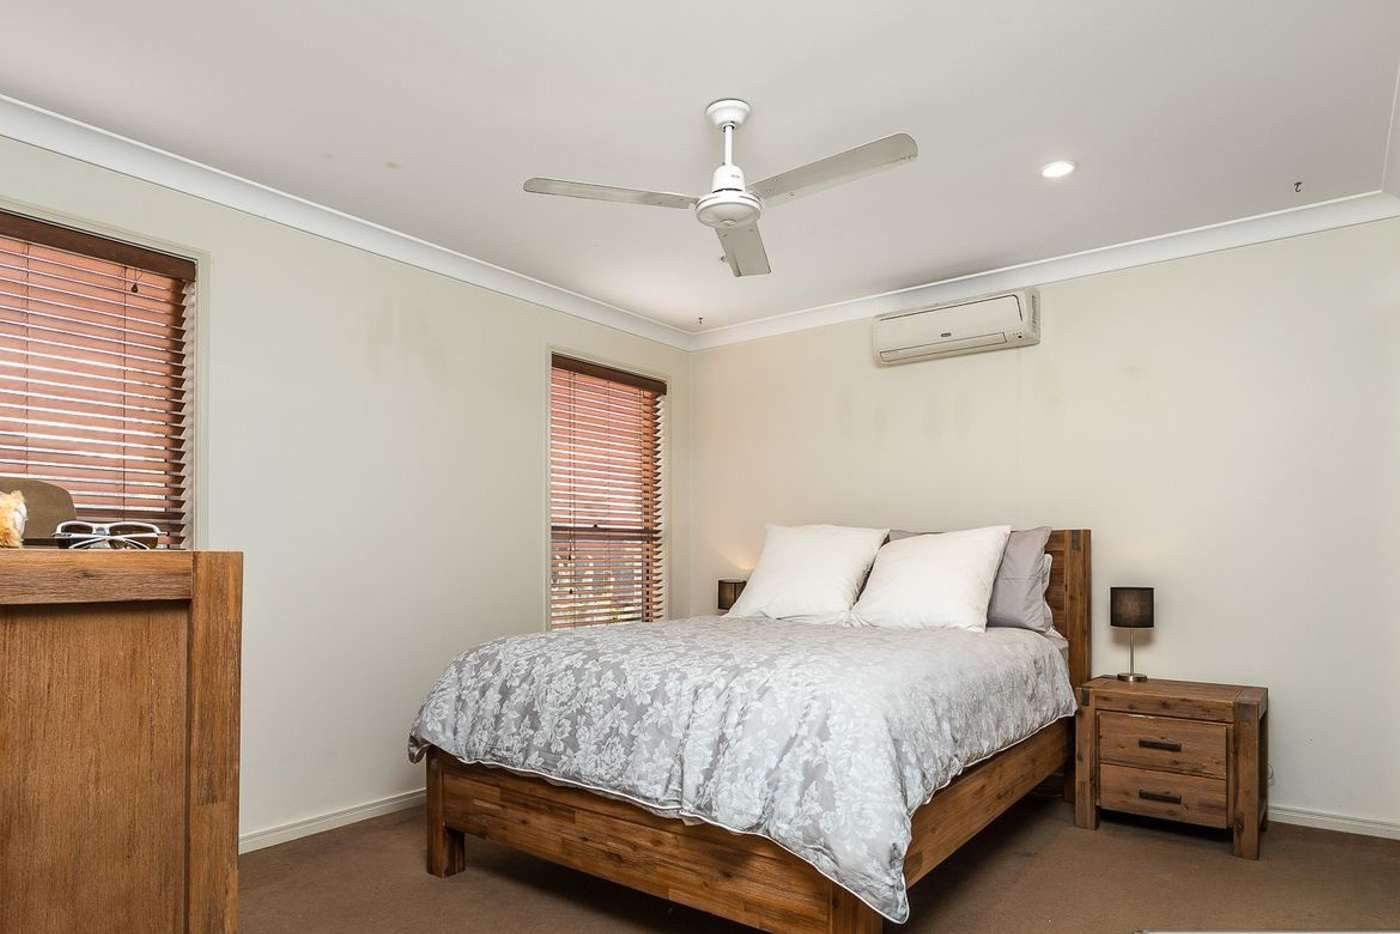 Seventh view of Homely house listing, 8 Scenic Drive, Murrumba Downs QLD 4503